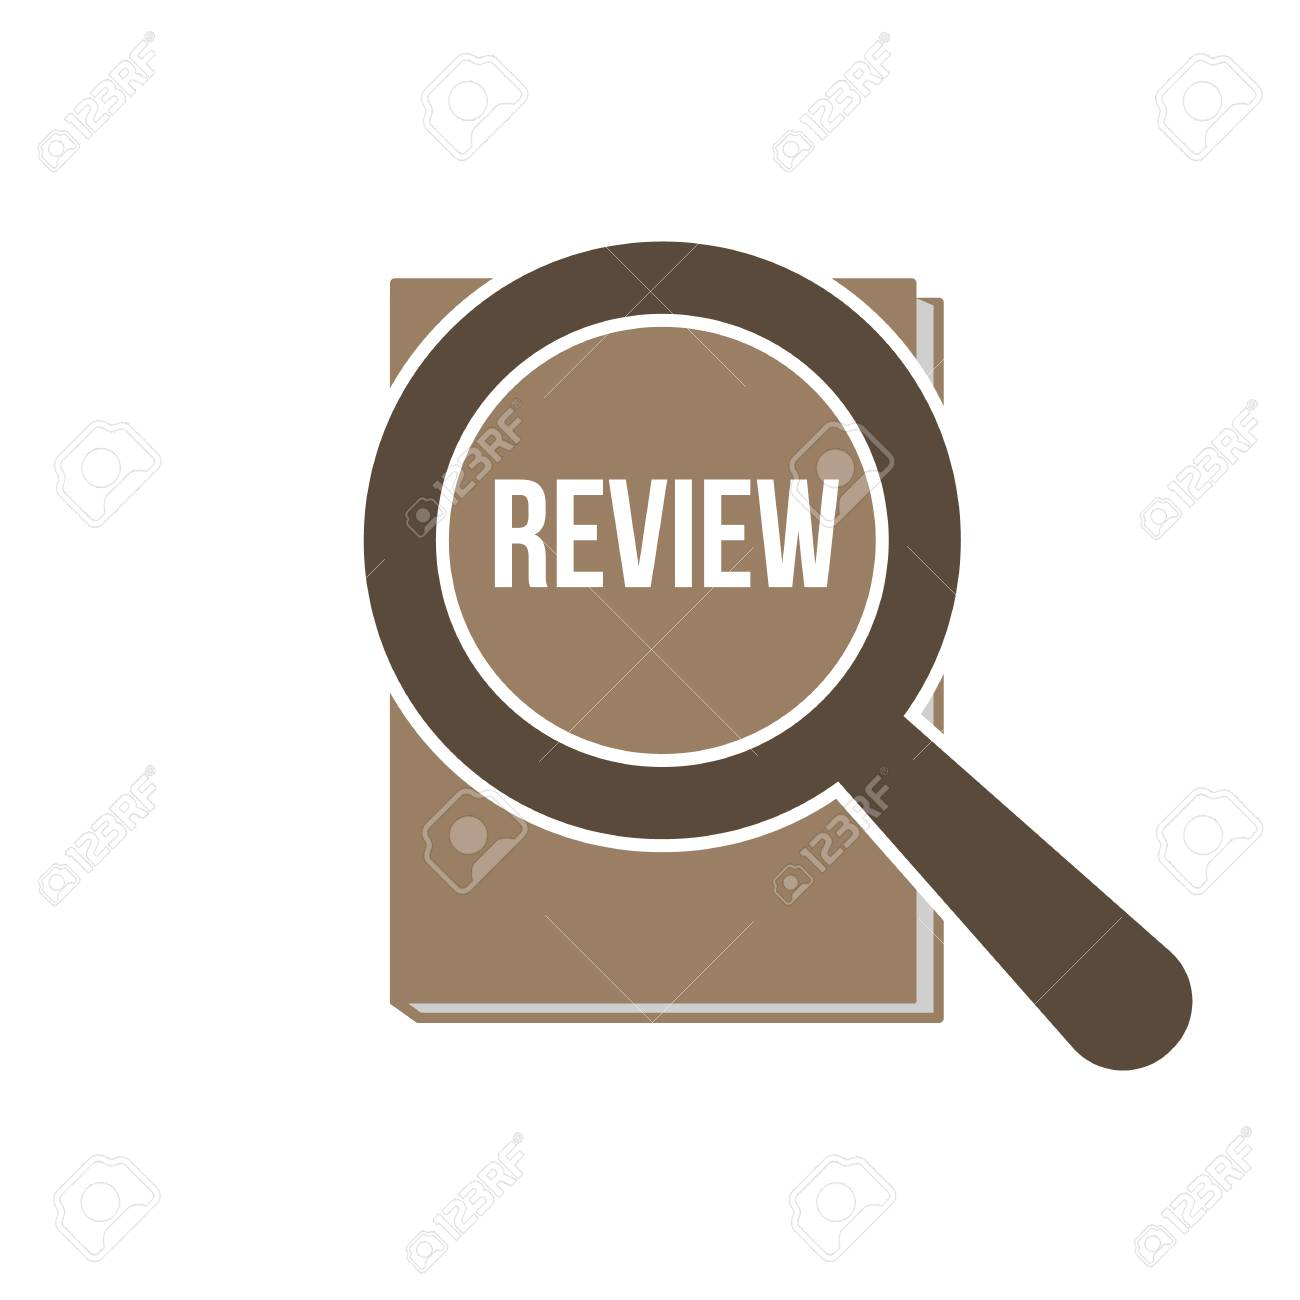 Review Word with Magnifying Glass. Vector illustration. - 98257455